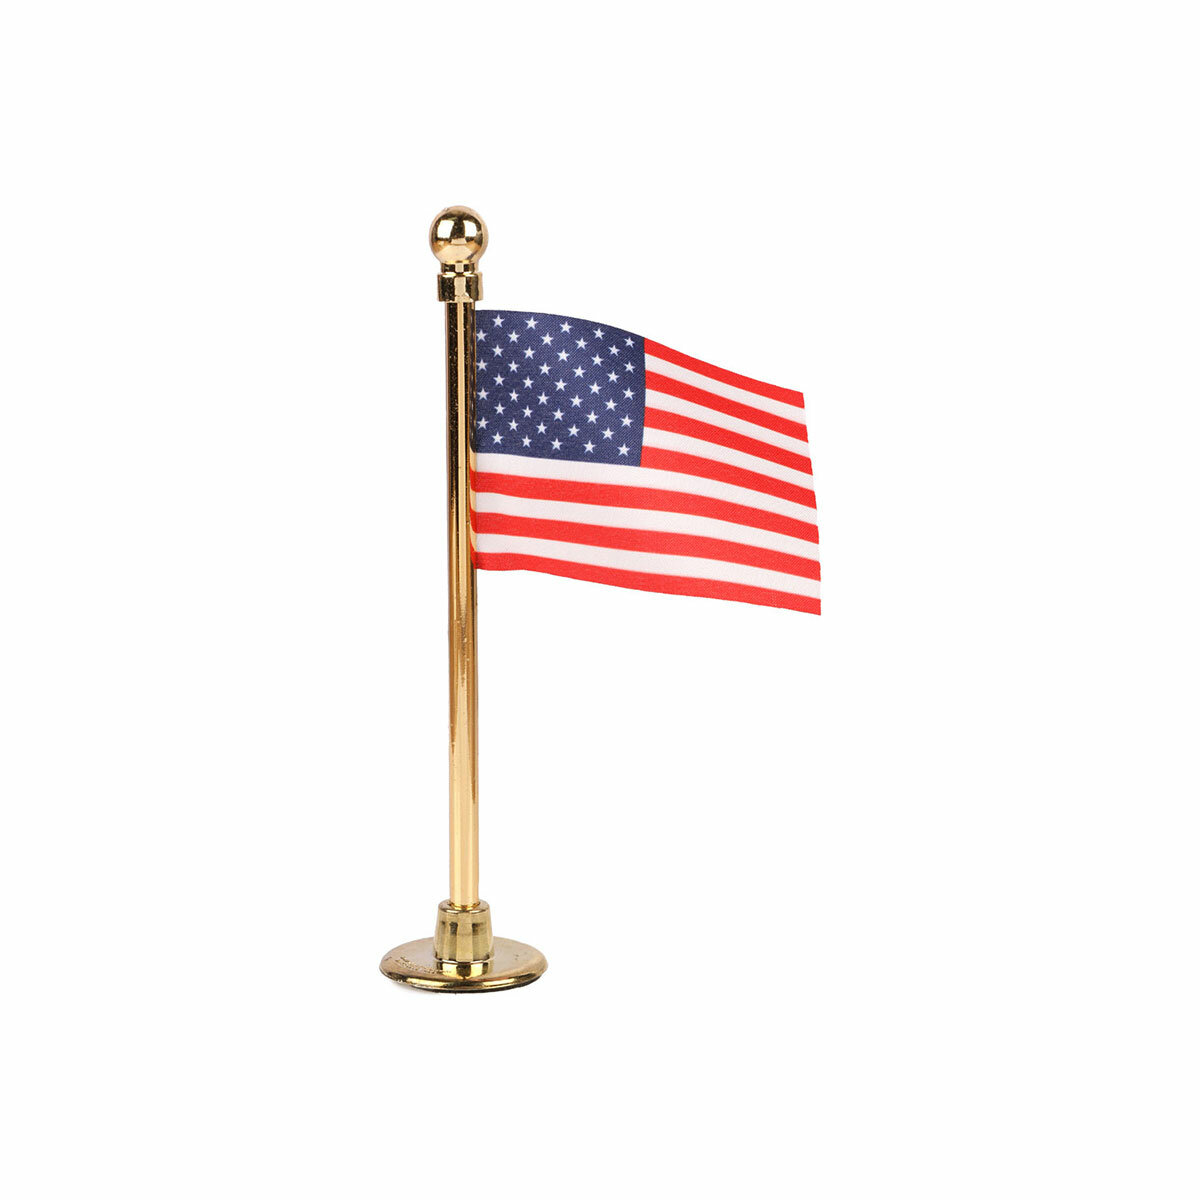 usa car dashboard flag with a chrome plated plastic stand / base